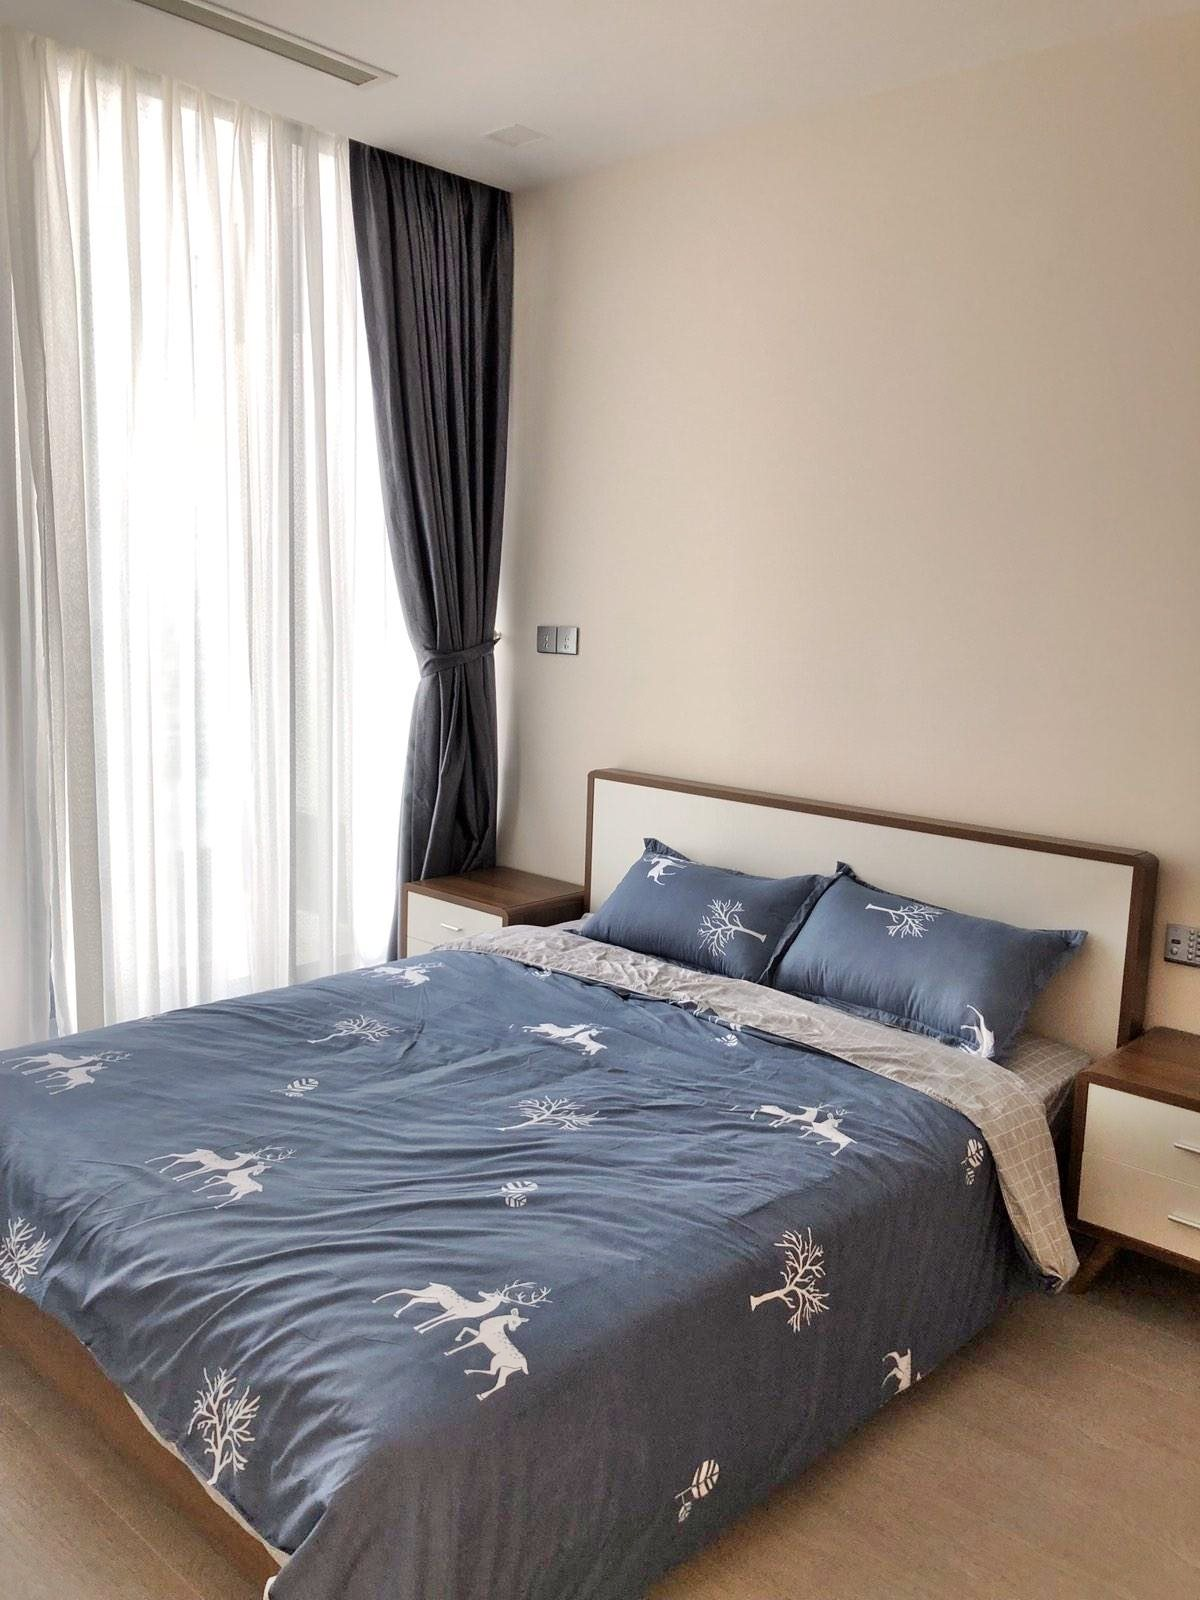 D1021179 - Vinhomes Golden River Apartment For Rent & Sale Ho Chi Minh - 1 bedroom